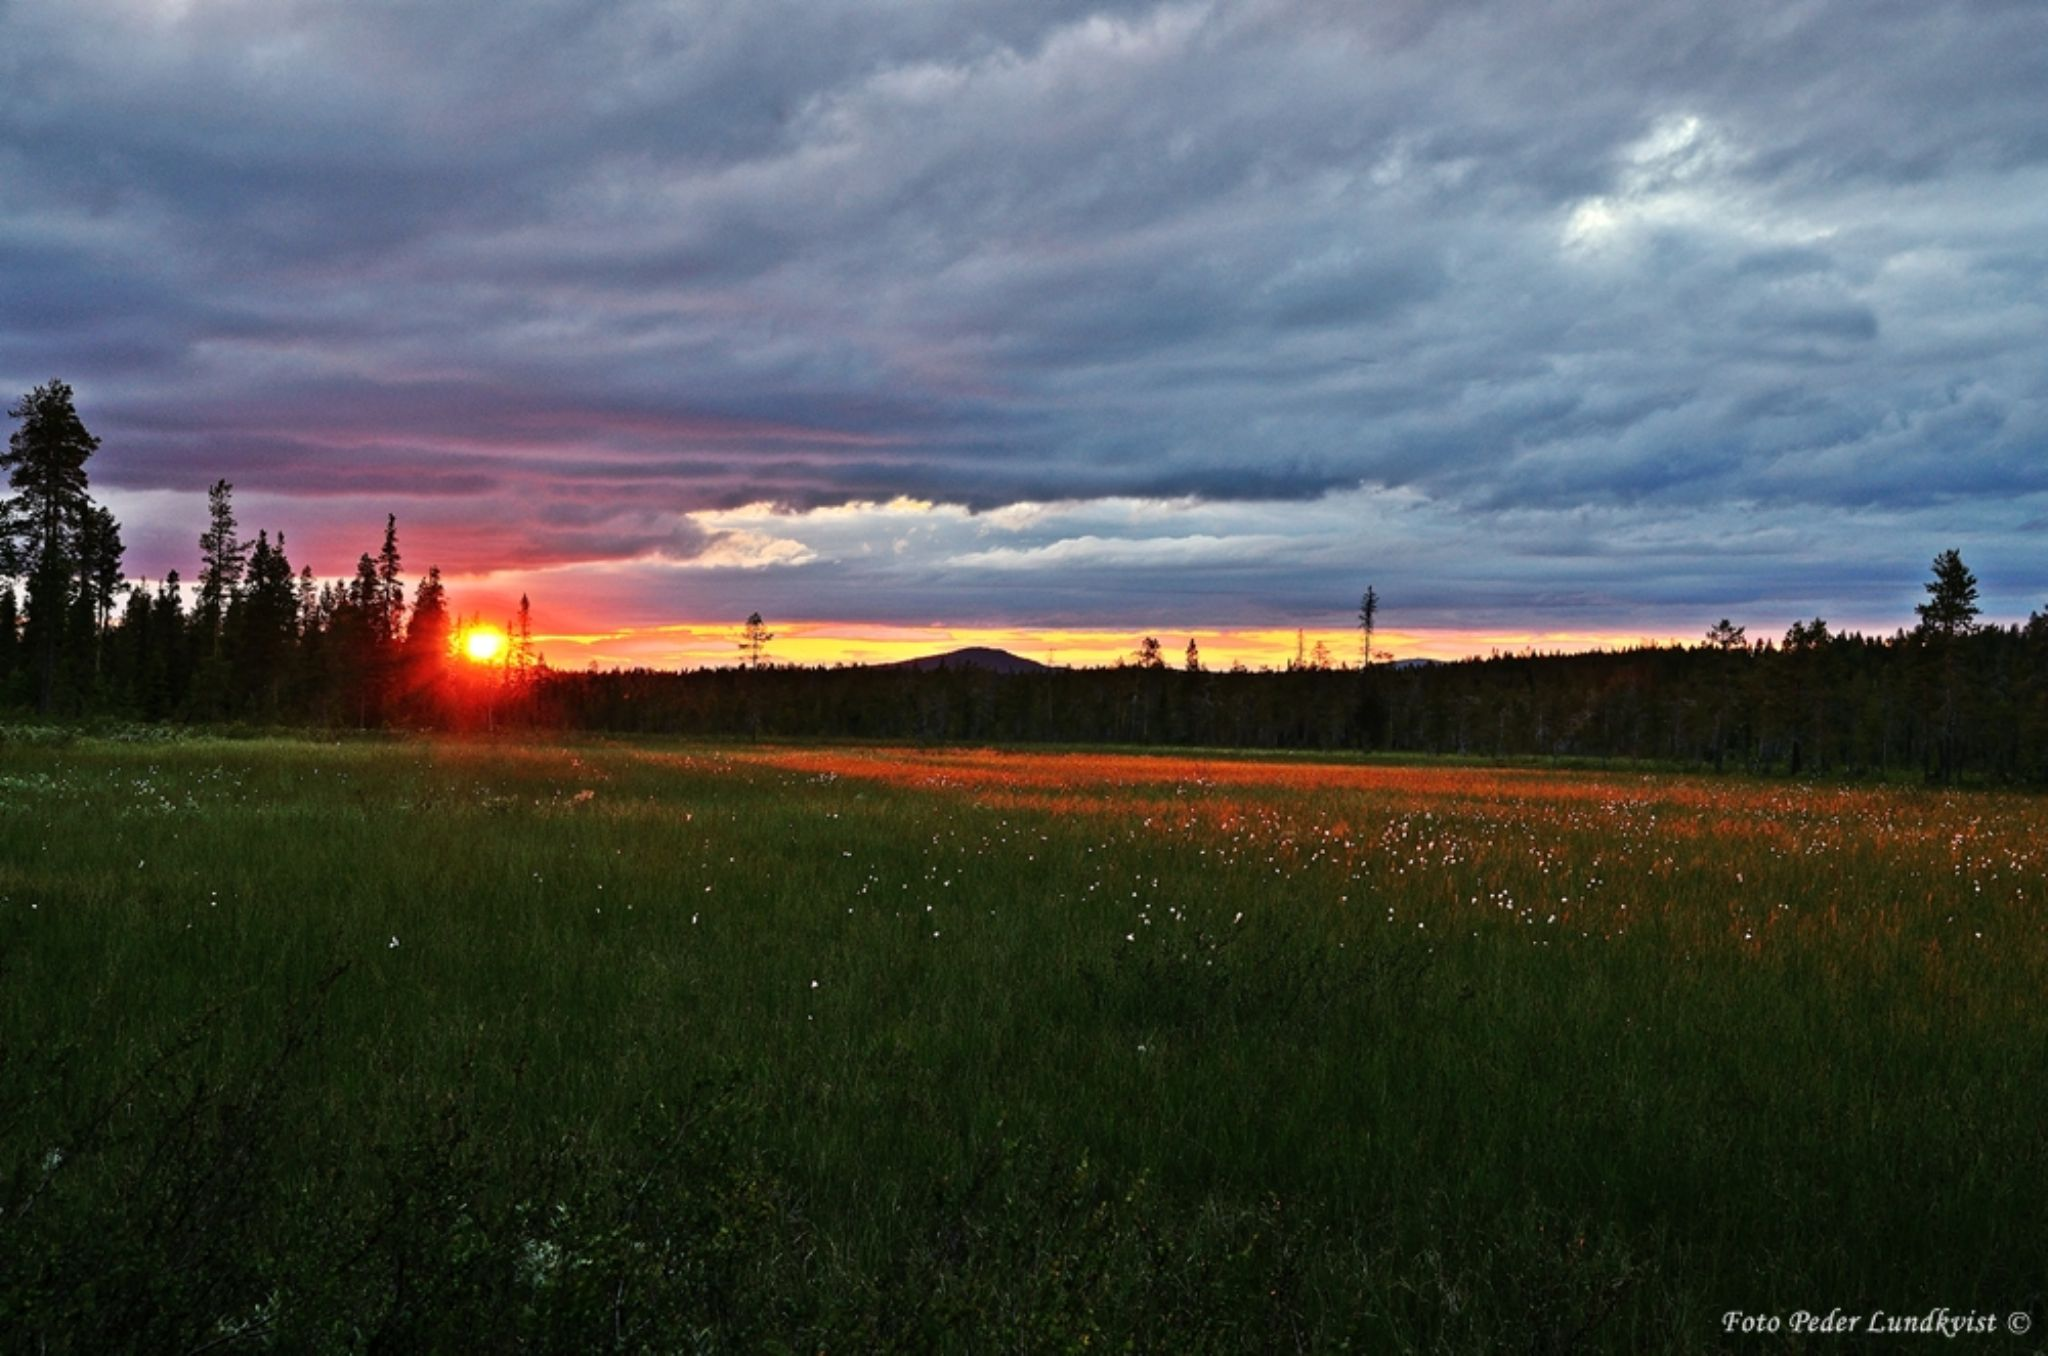 Summernight in the land of the taiga by aplog1